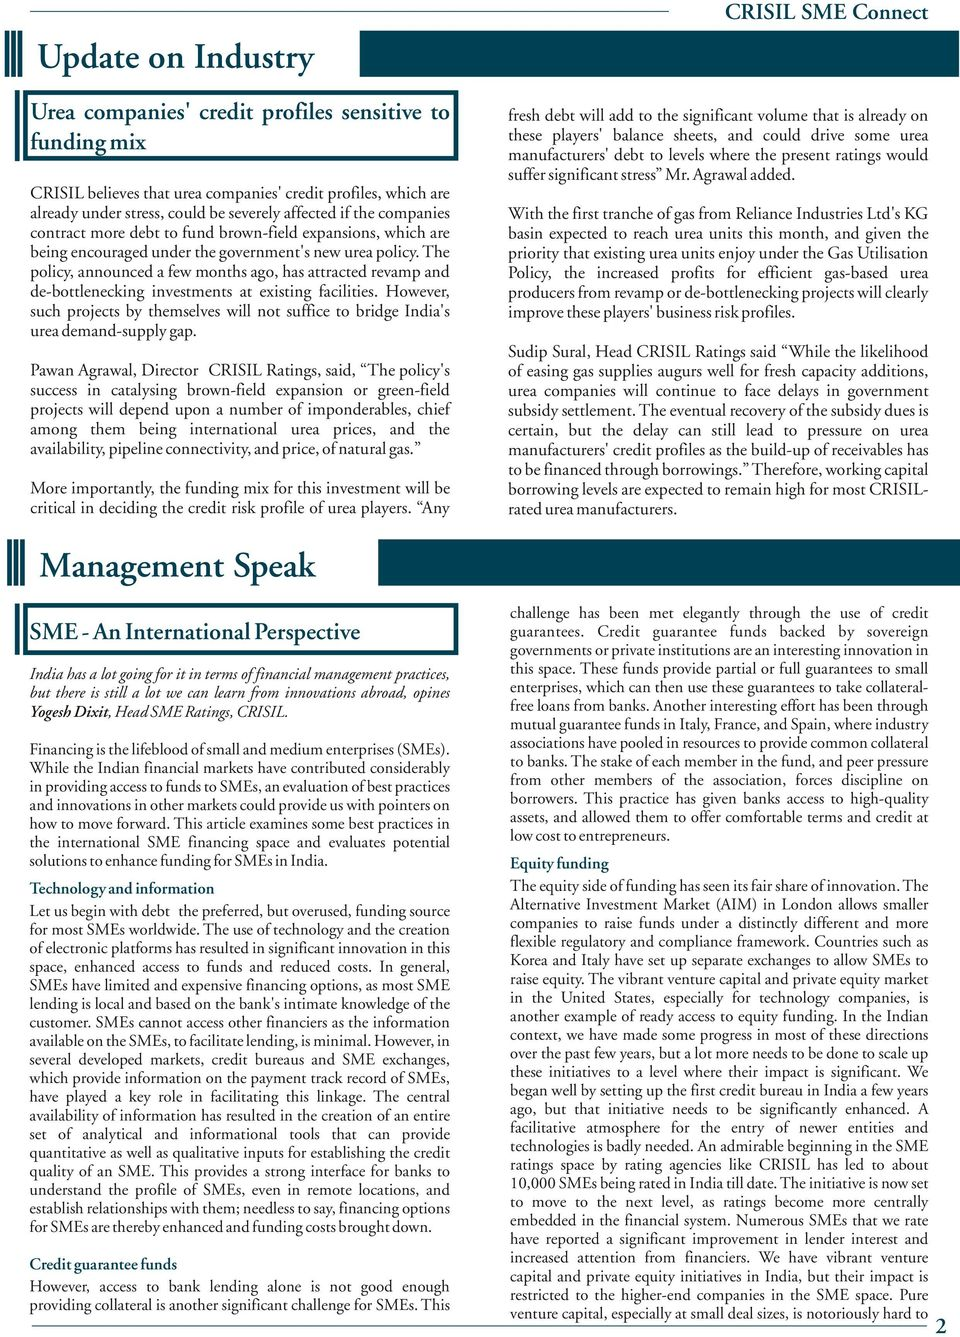 Volume: 6  CRISIL SME Connect  A newsletter from CRISIL SME